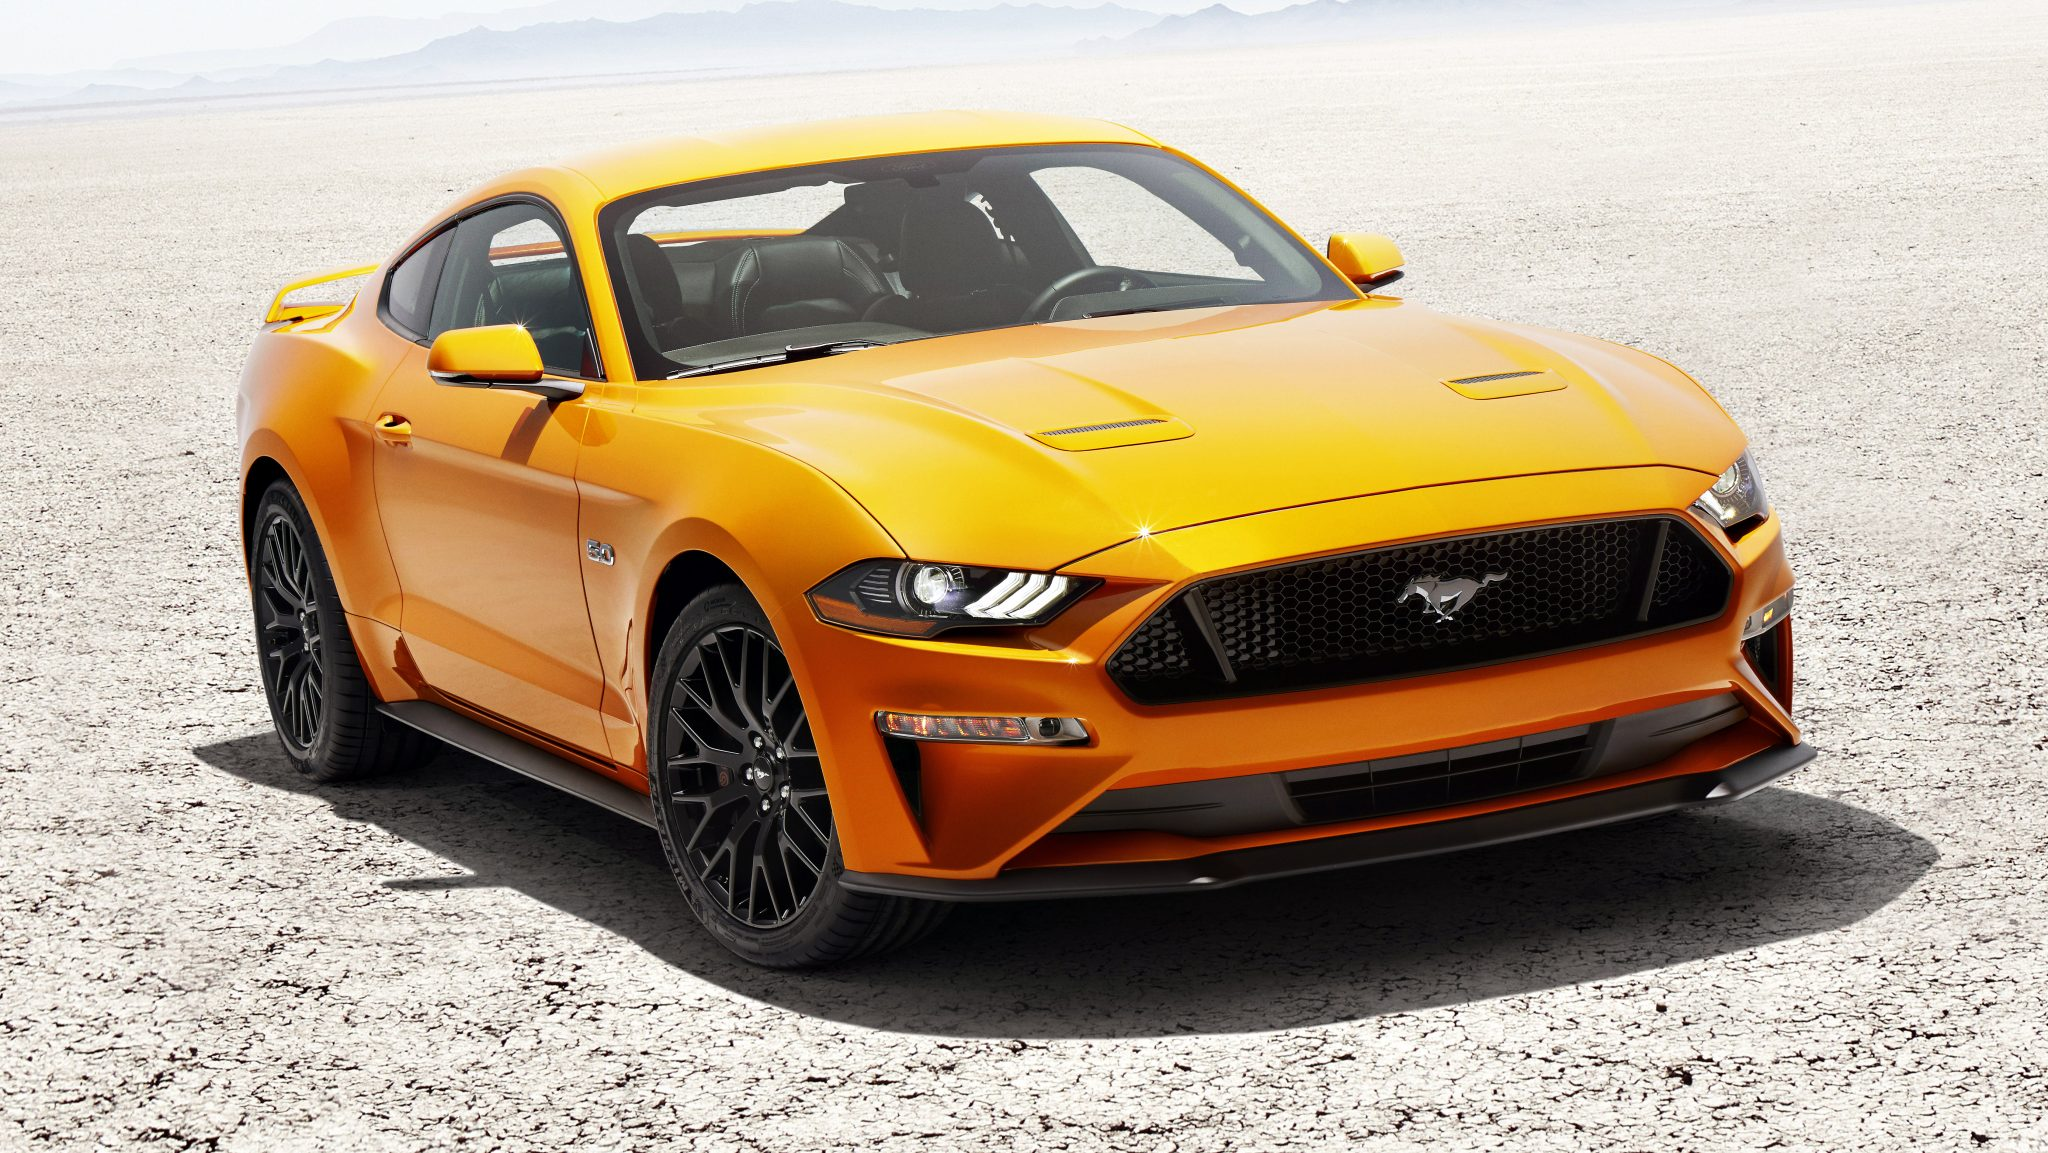 Ford Mustang GT V8 orange Fury